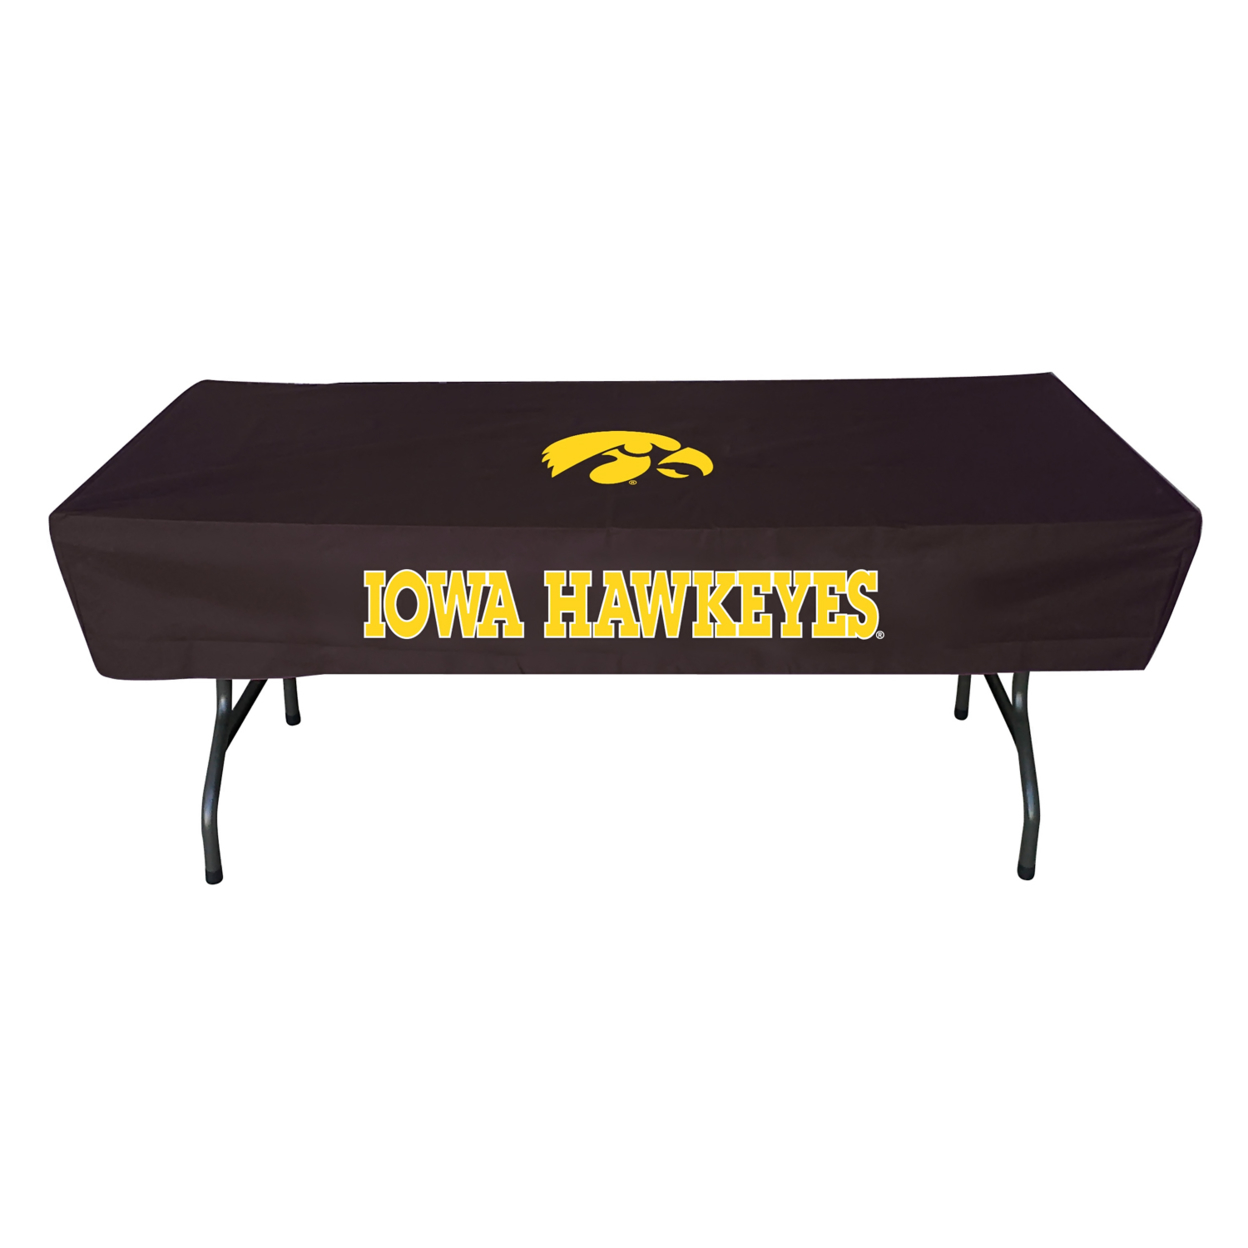 Rivalry 6 Feet Iowa Sports Collegiate Team Logo Party Outdoor Camping Table Cover кепка badboy logo team hat